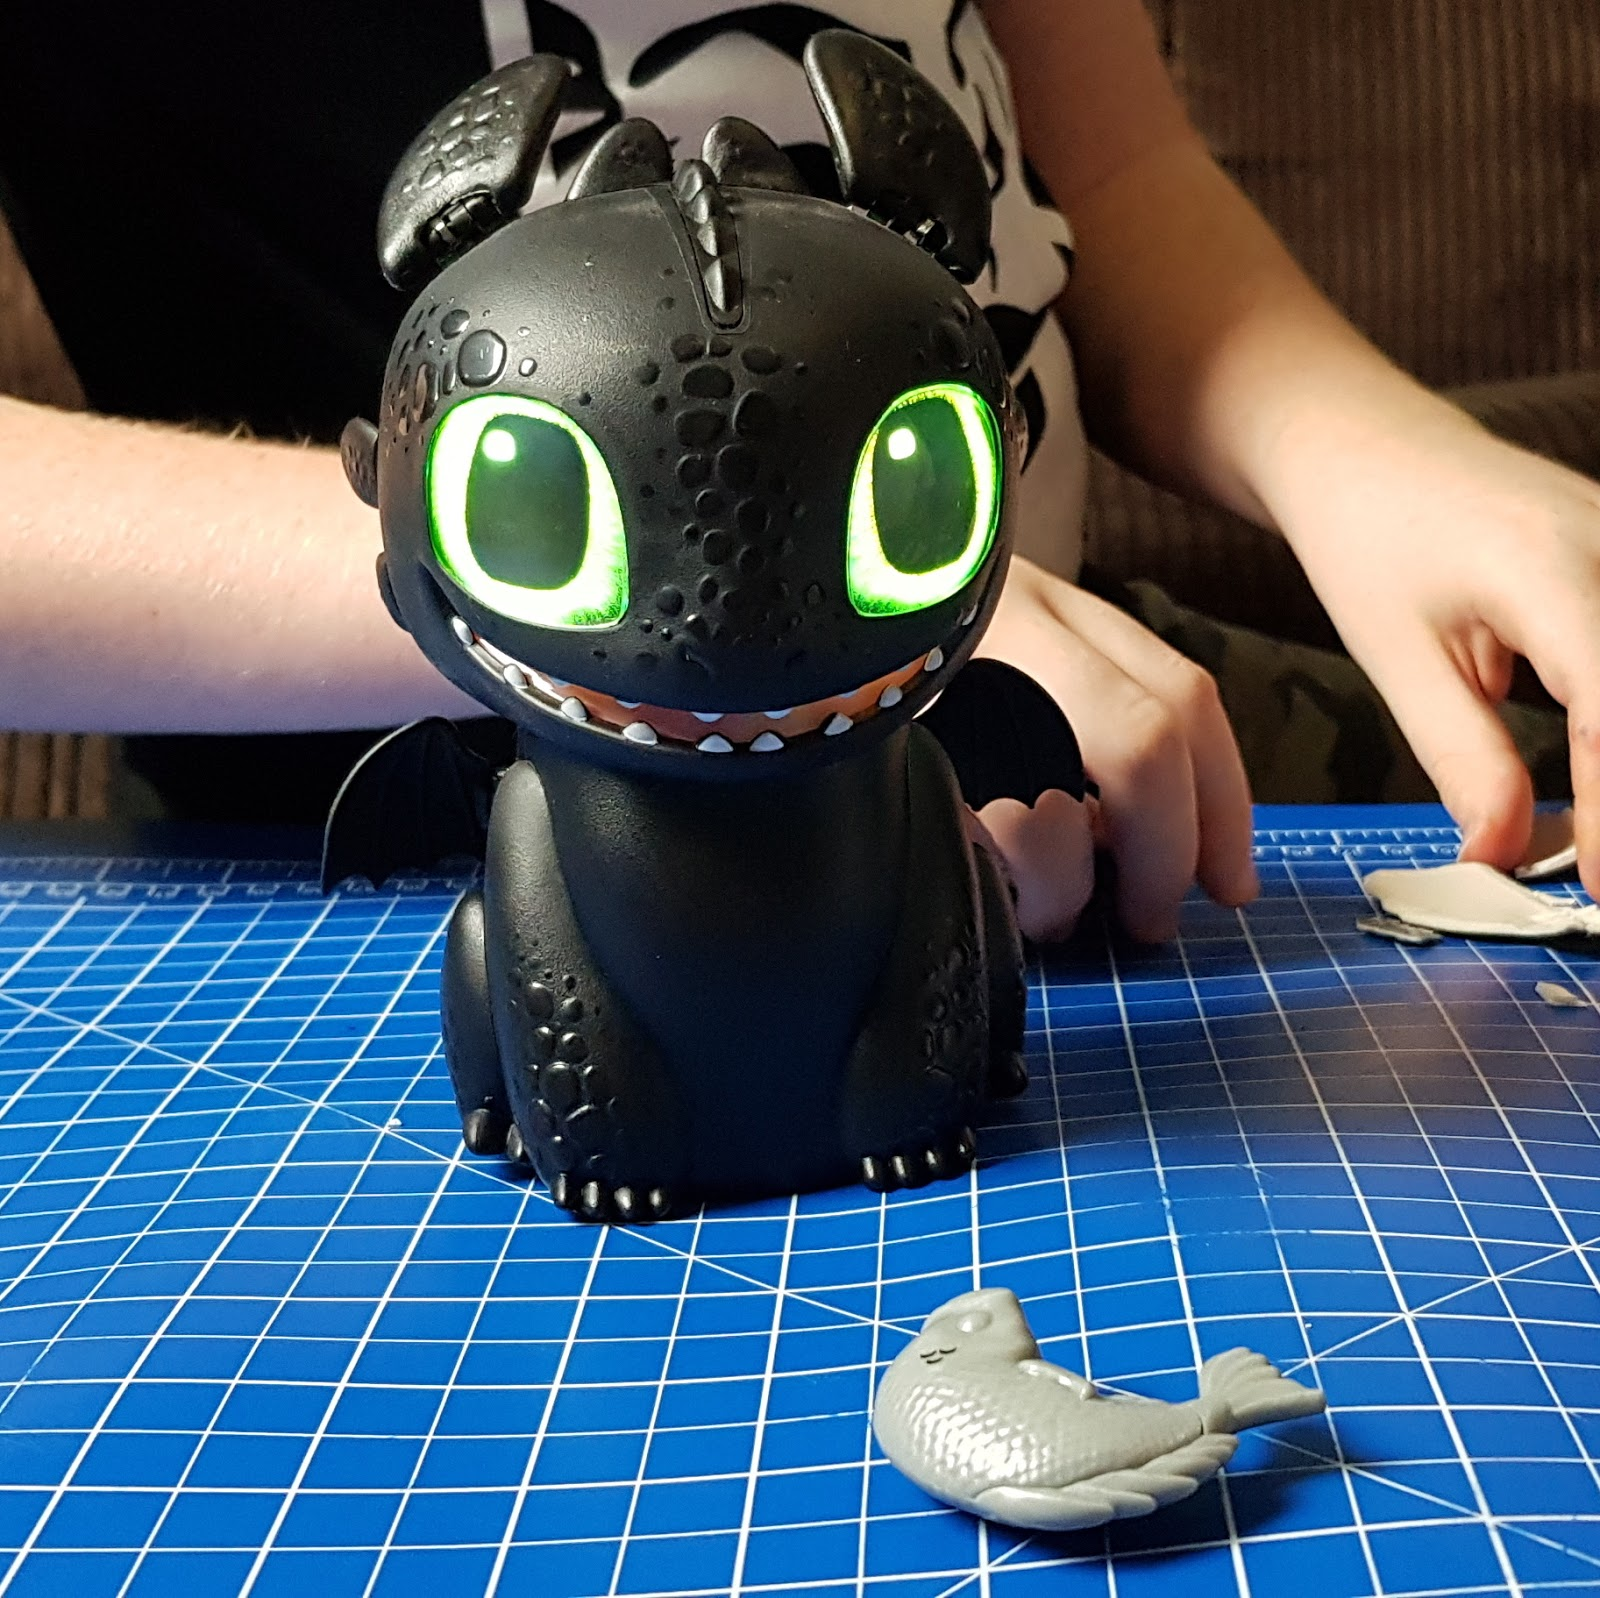 The Brick Castle Hatching Dragons Toothless How To Train Your Dragon Toy Review Age 5 Sent By Spinmaster